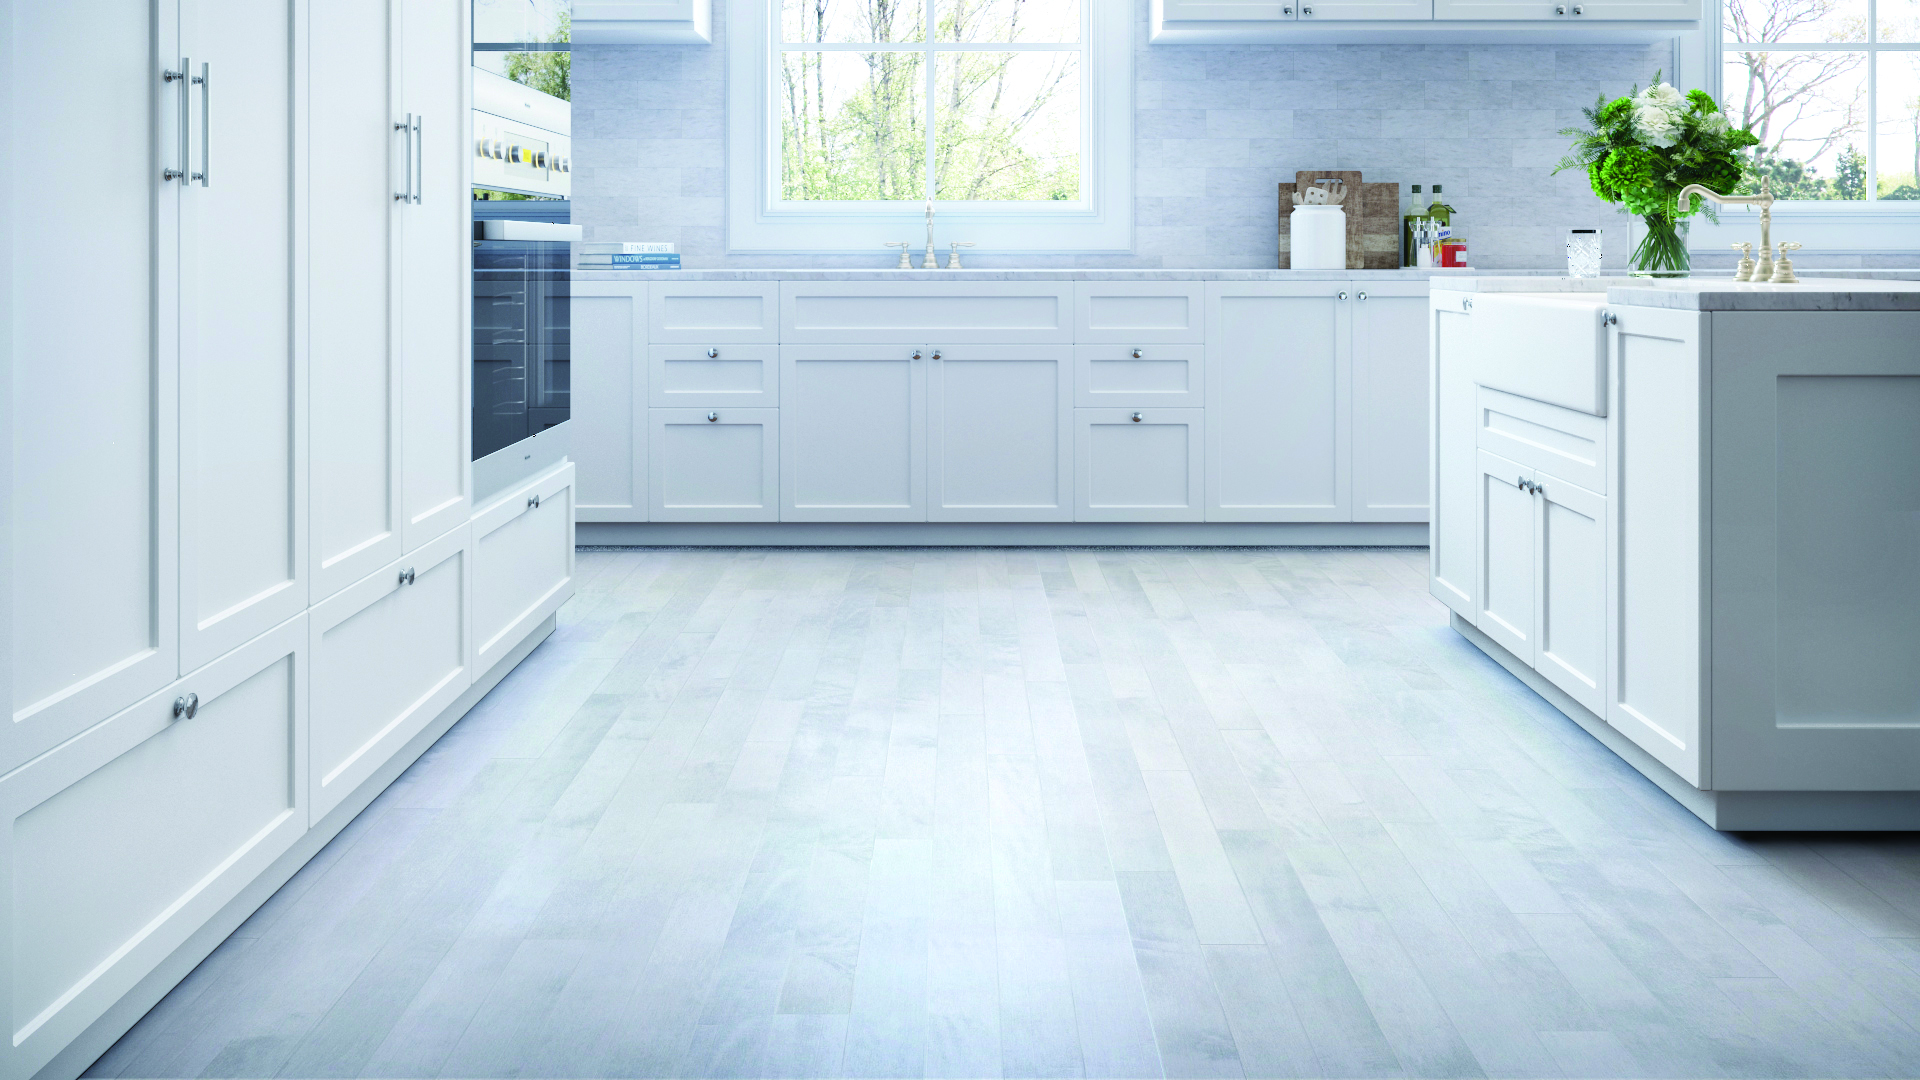 Appalachian Floorings Special FX Collection Includes A Metal Coating That Uses Real Metallic Flakes To Create Wood Floors Have The Look And Sheen